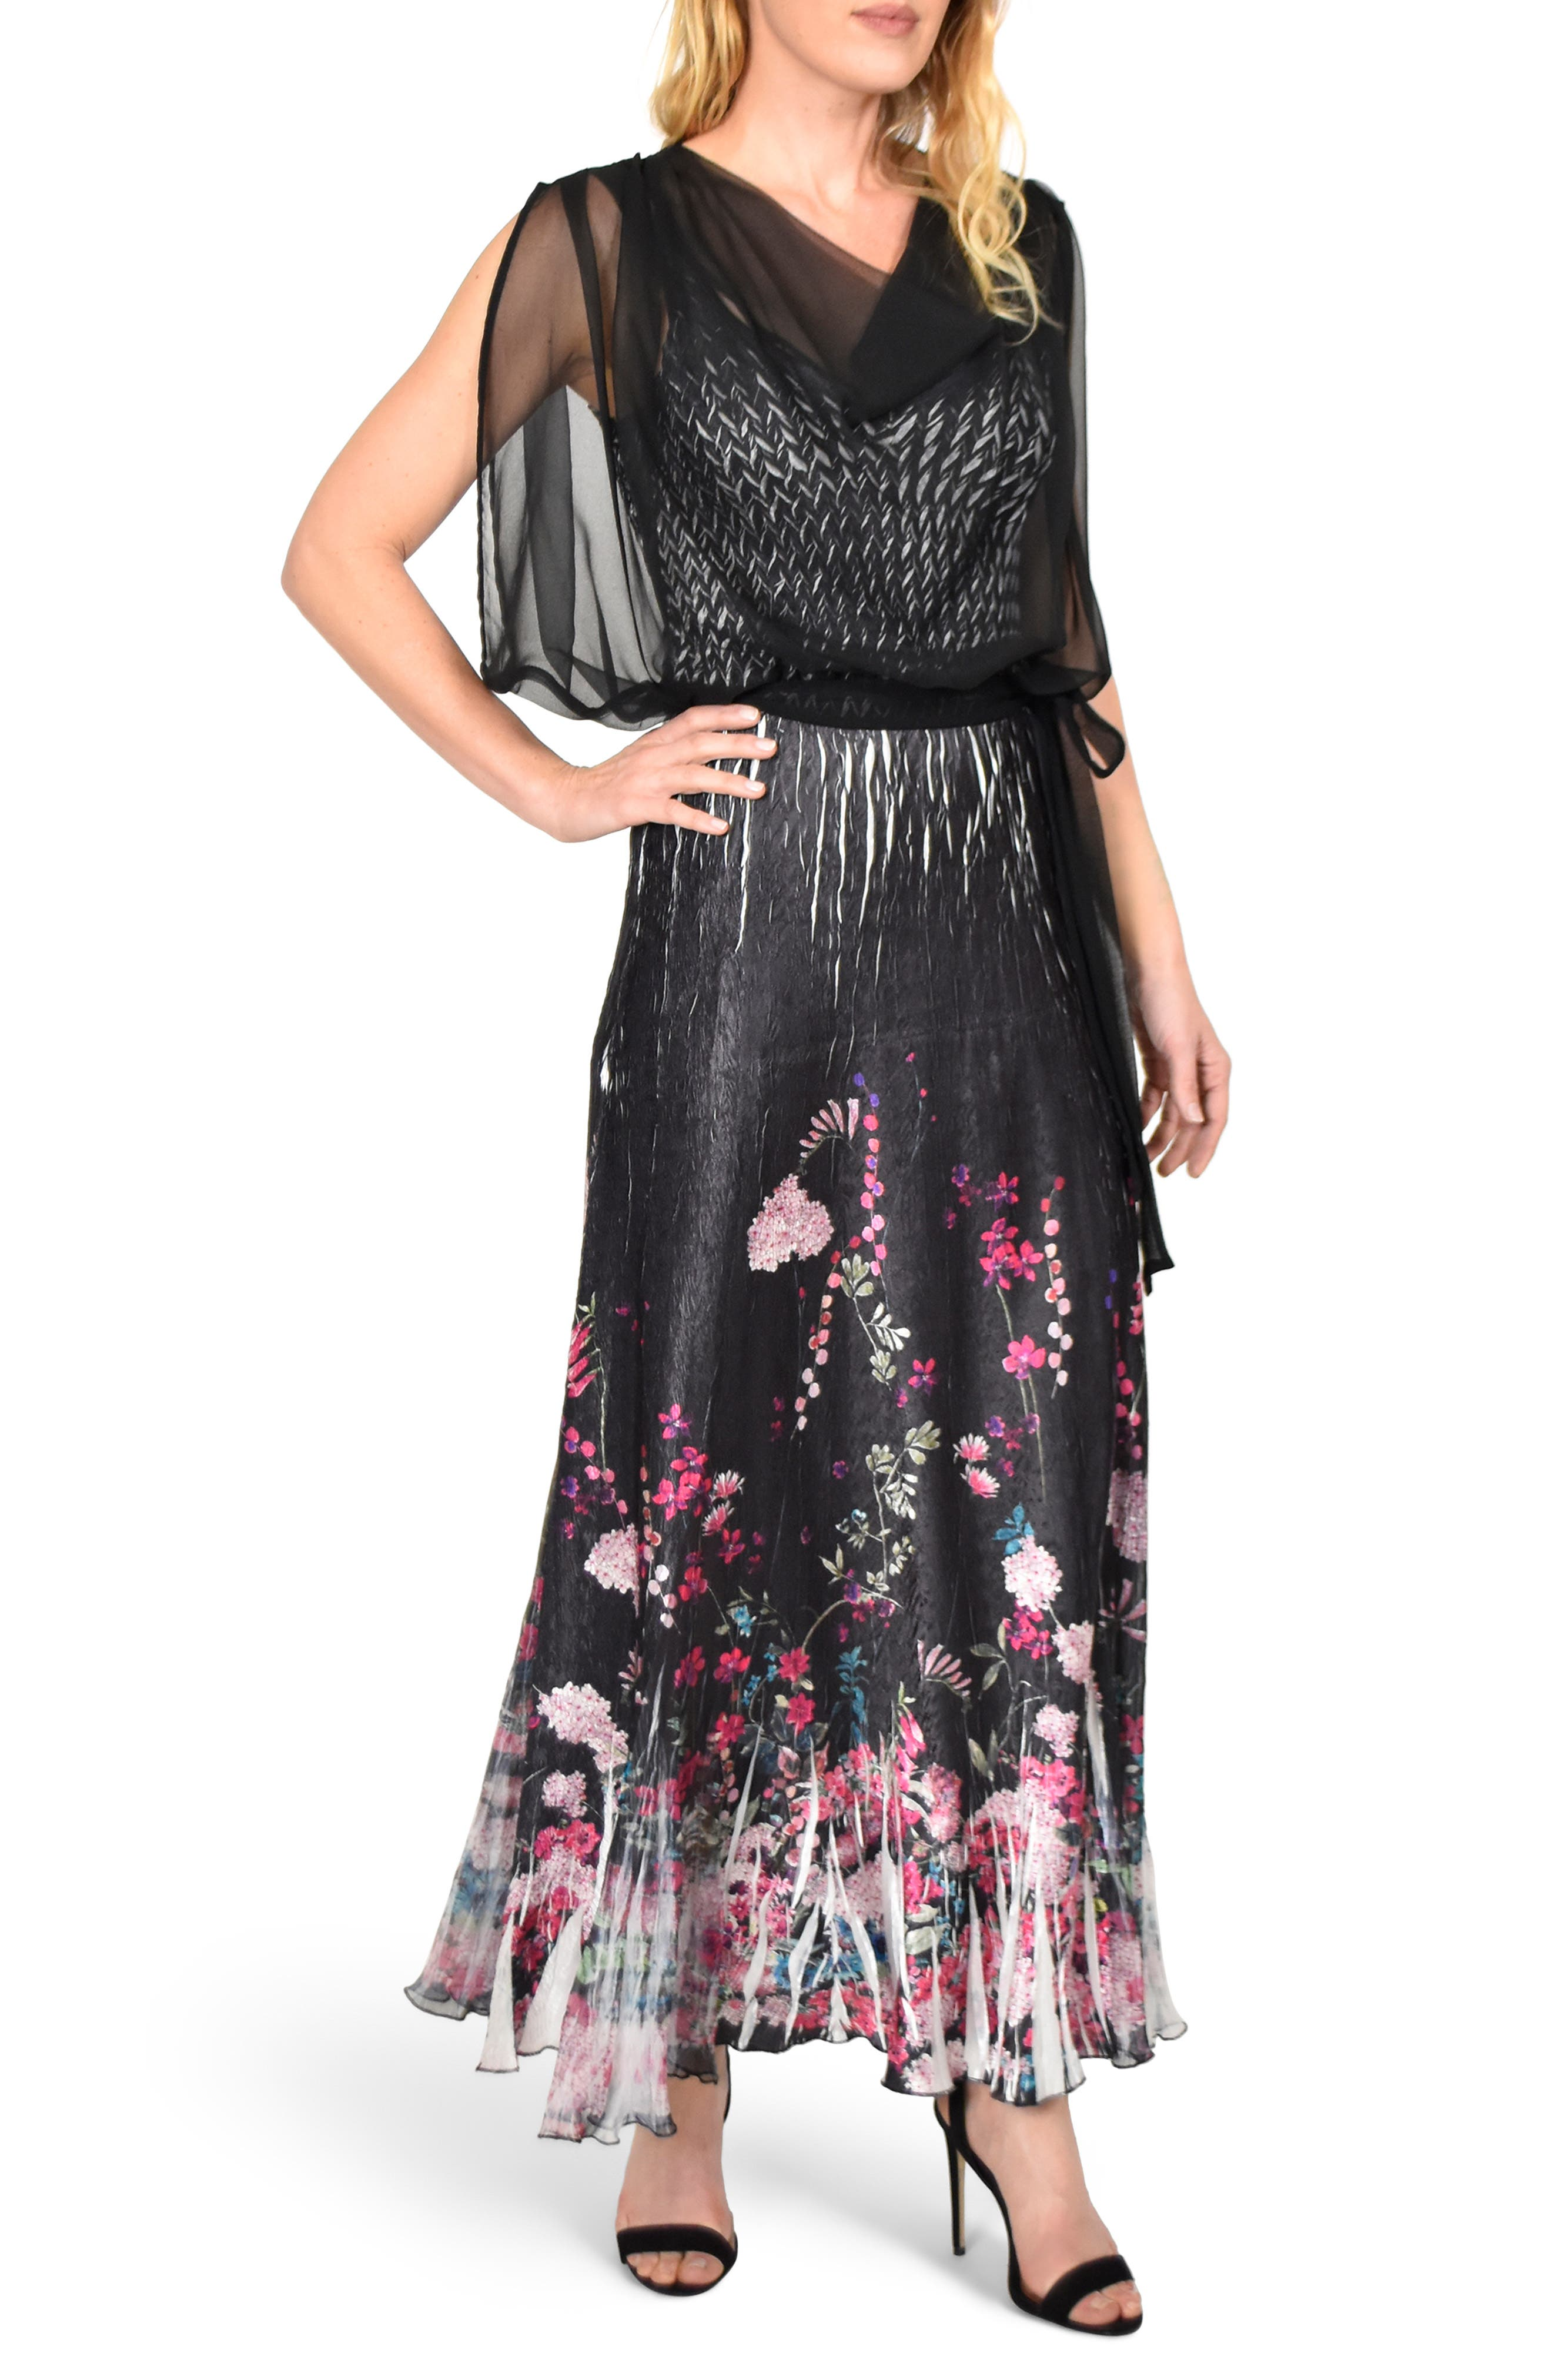 1930s Evening Dresses | Old Hollywood Dress Womens Komarov Chiffon Popover Charmeuse Gown $398.00 AT vintagedancer.com